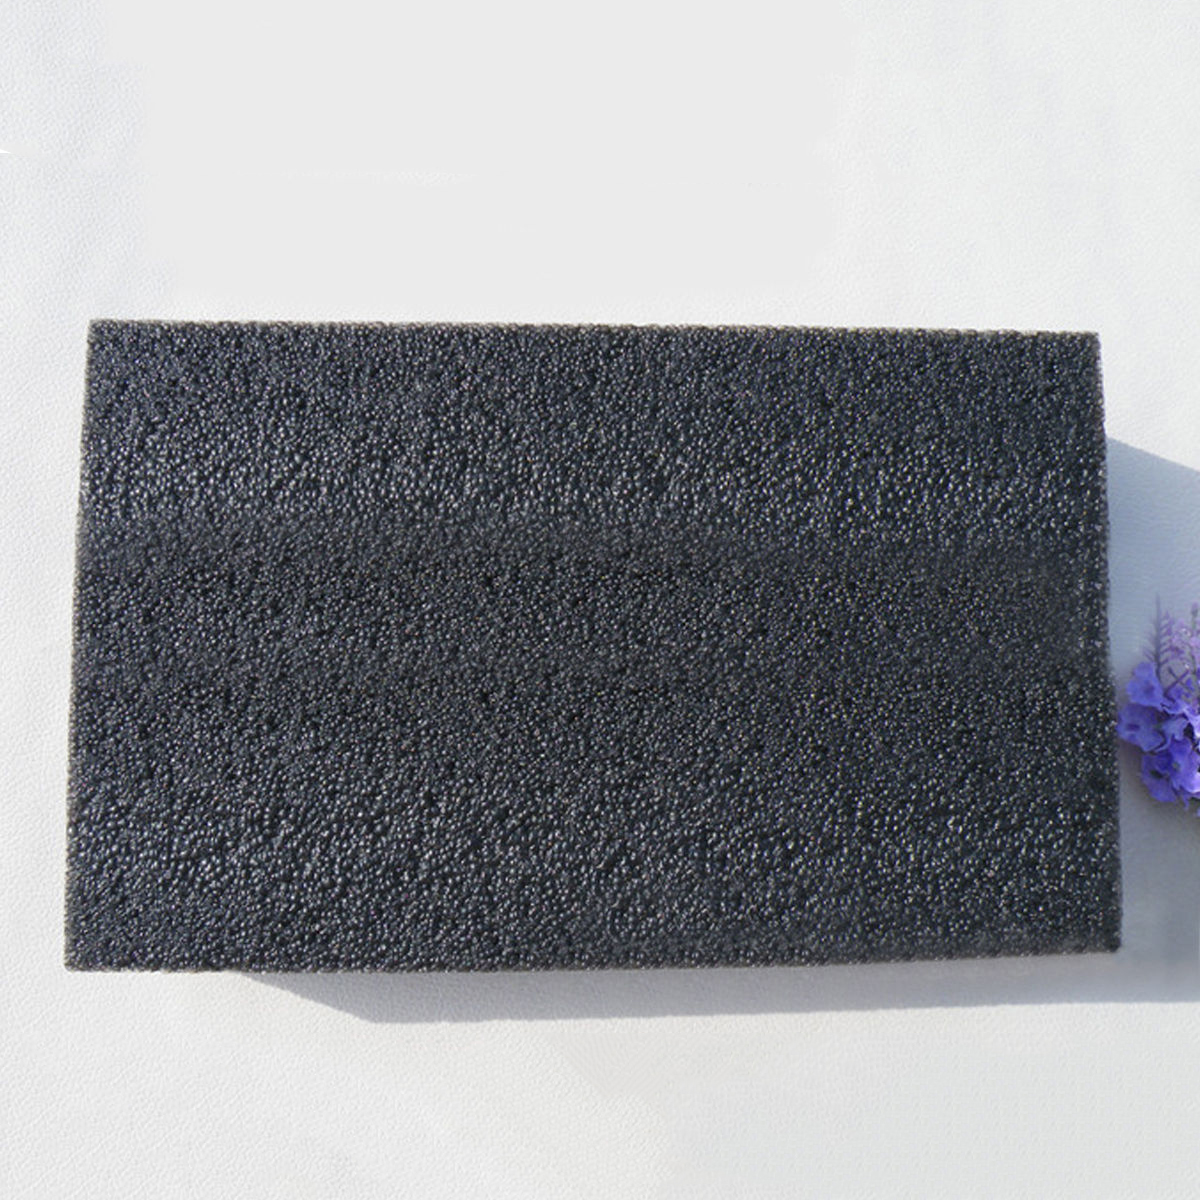 JX-LCLYL 25*15*5cm Needle Pin Dense Foam Pad Cushion Mat Holder Insertion Craft Felting